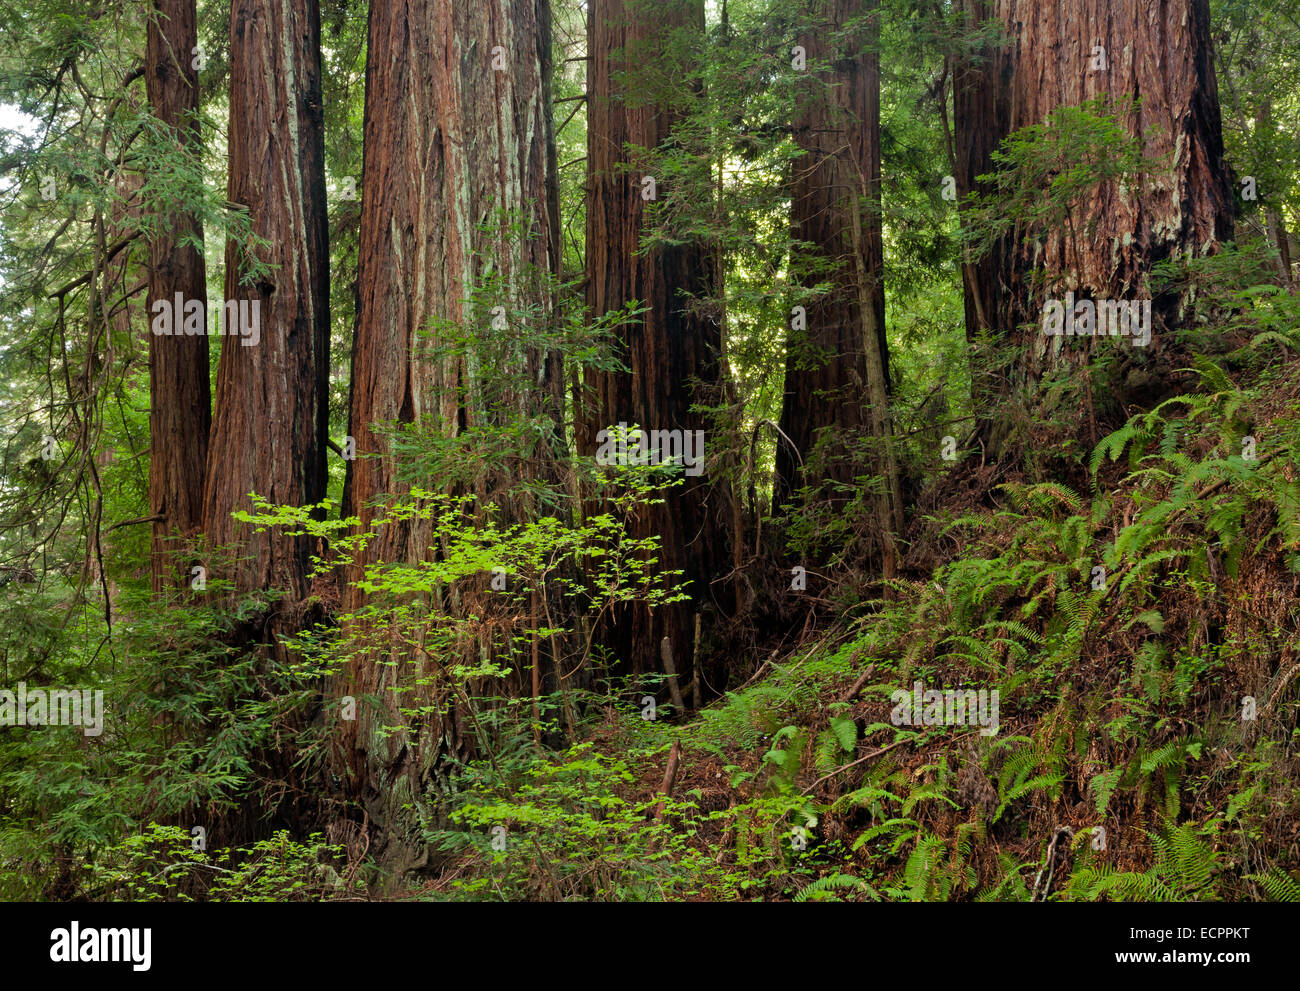 CA02535-00...CALIFORNIA - Redwood trees in the Peters Grove area of Portola Redwoods State Park in the Santa Cruz - Stock Image